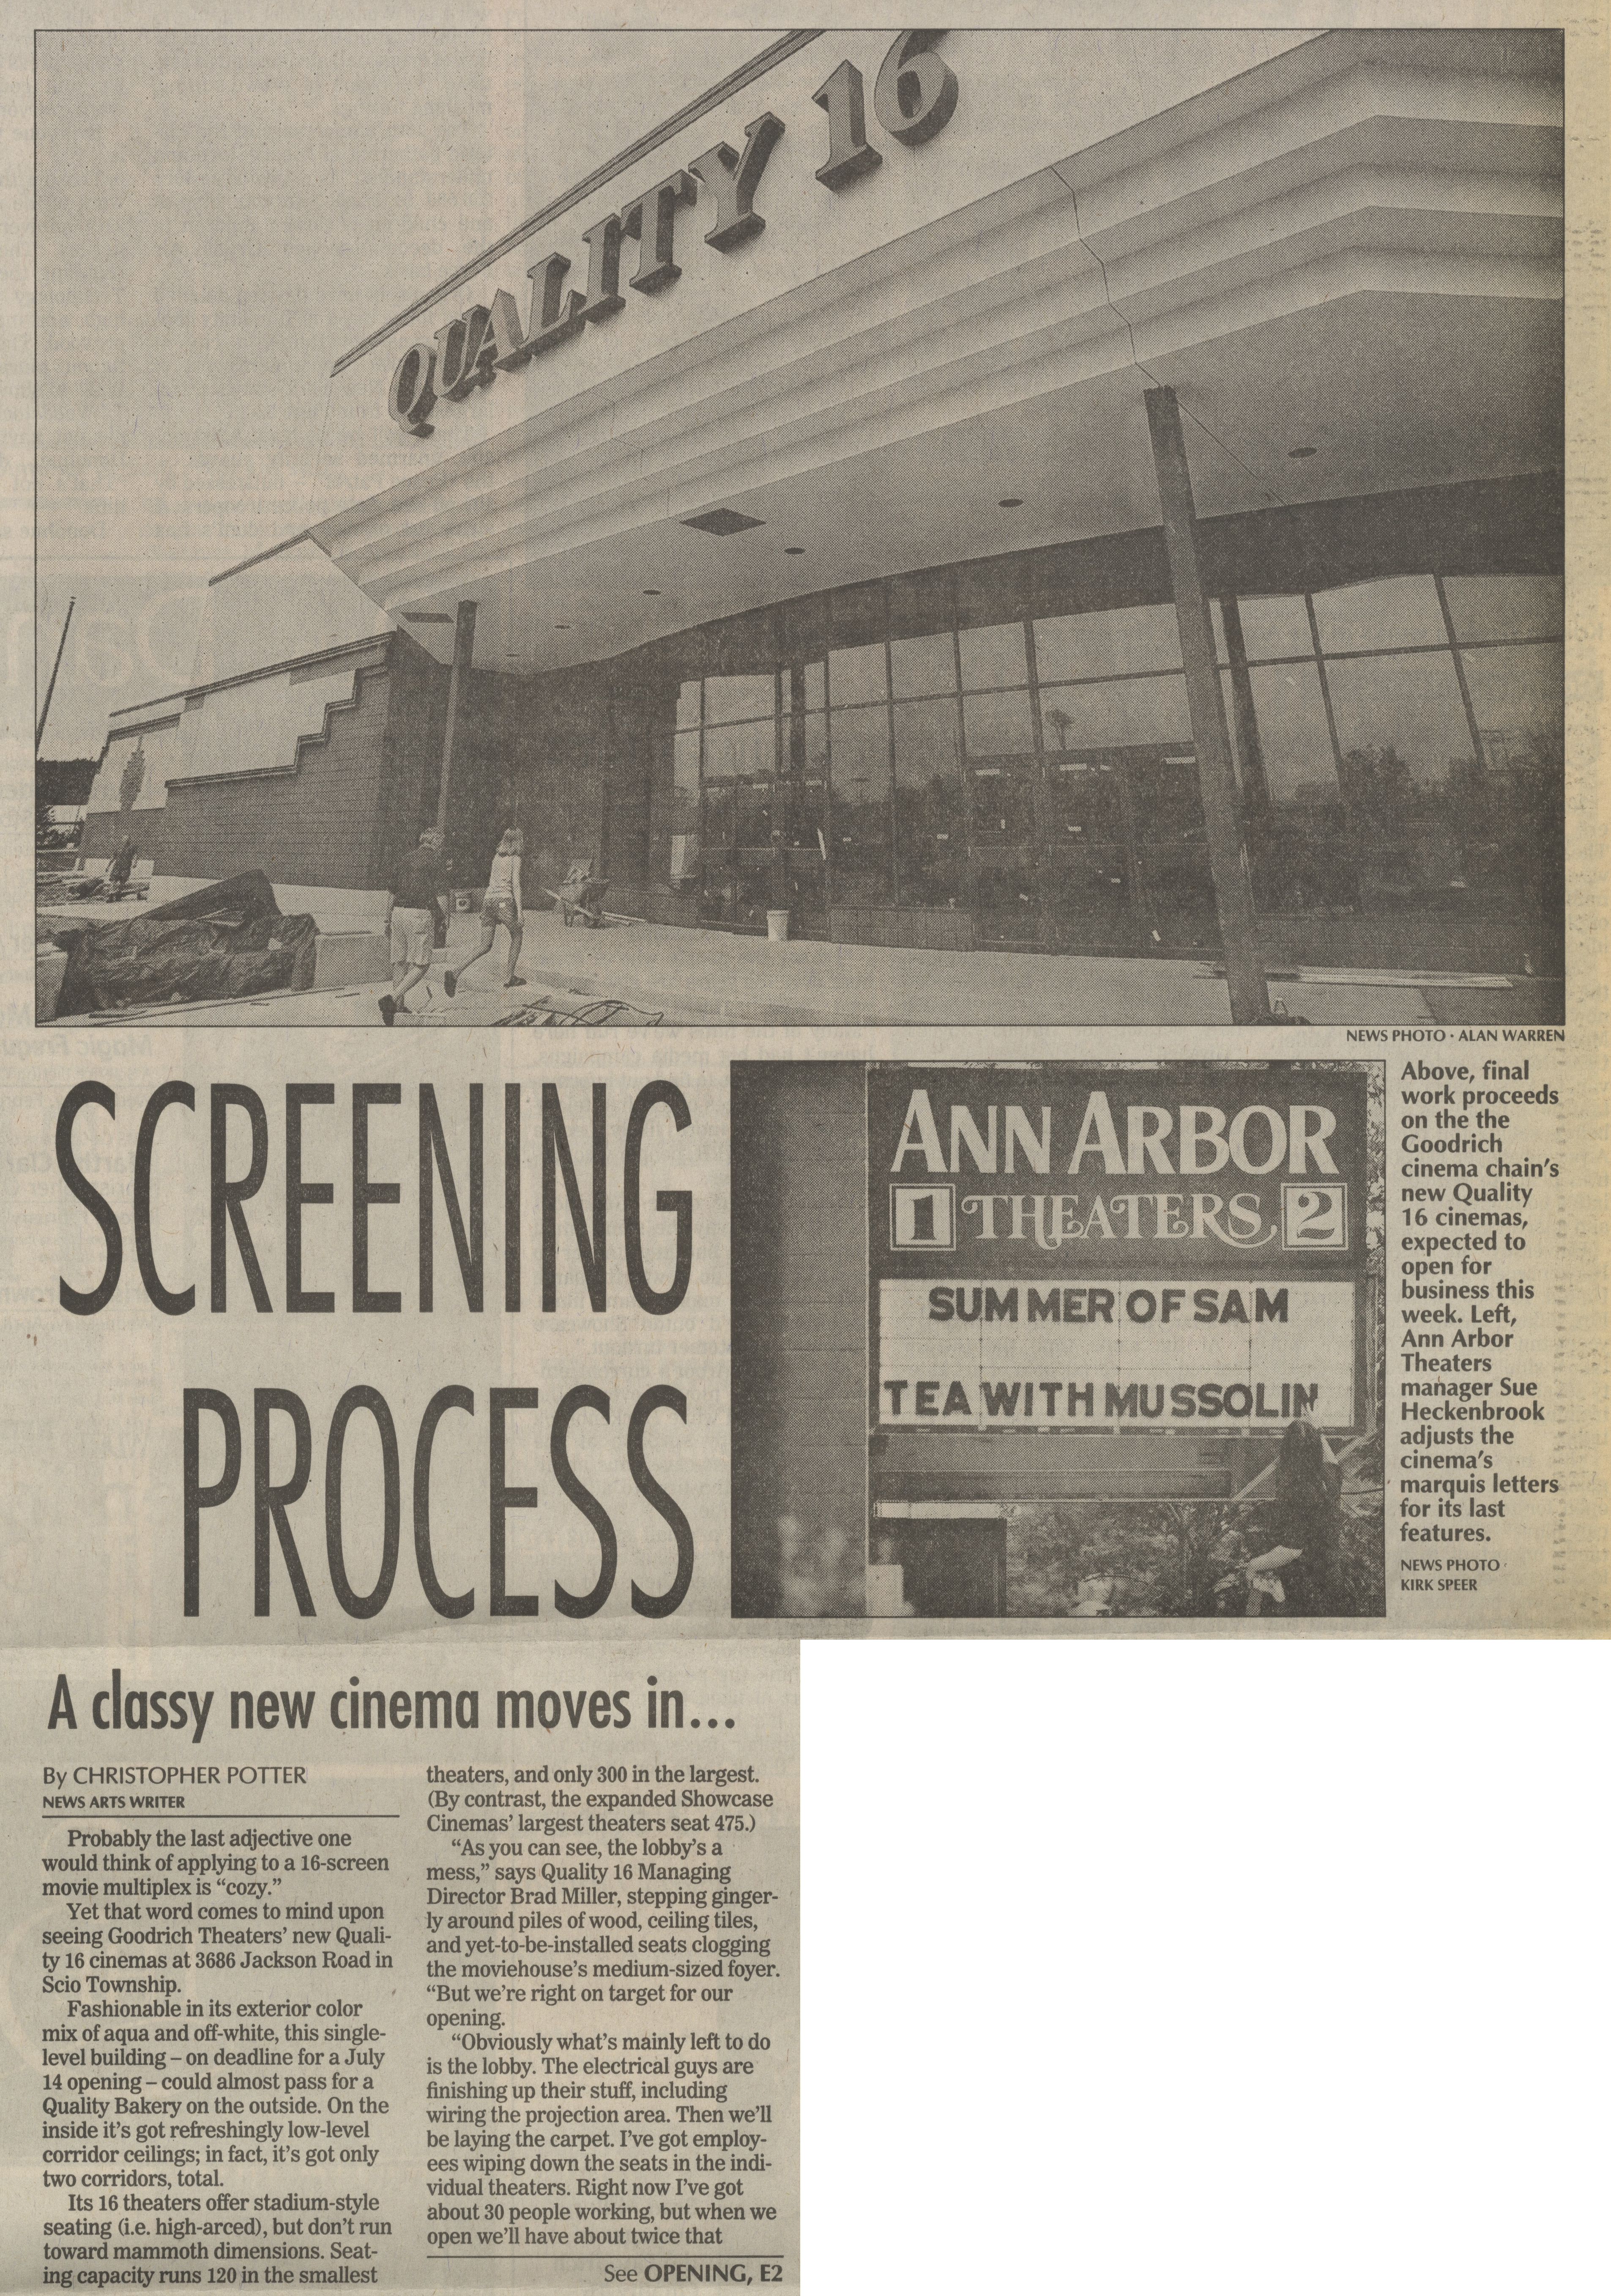 Screening Process: A Classy New Cinema Moves In image